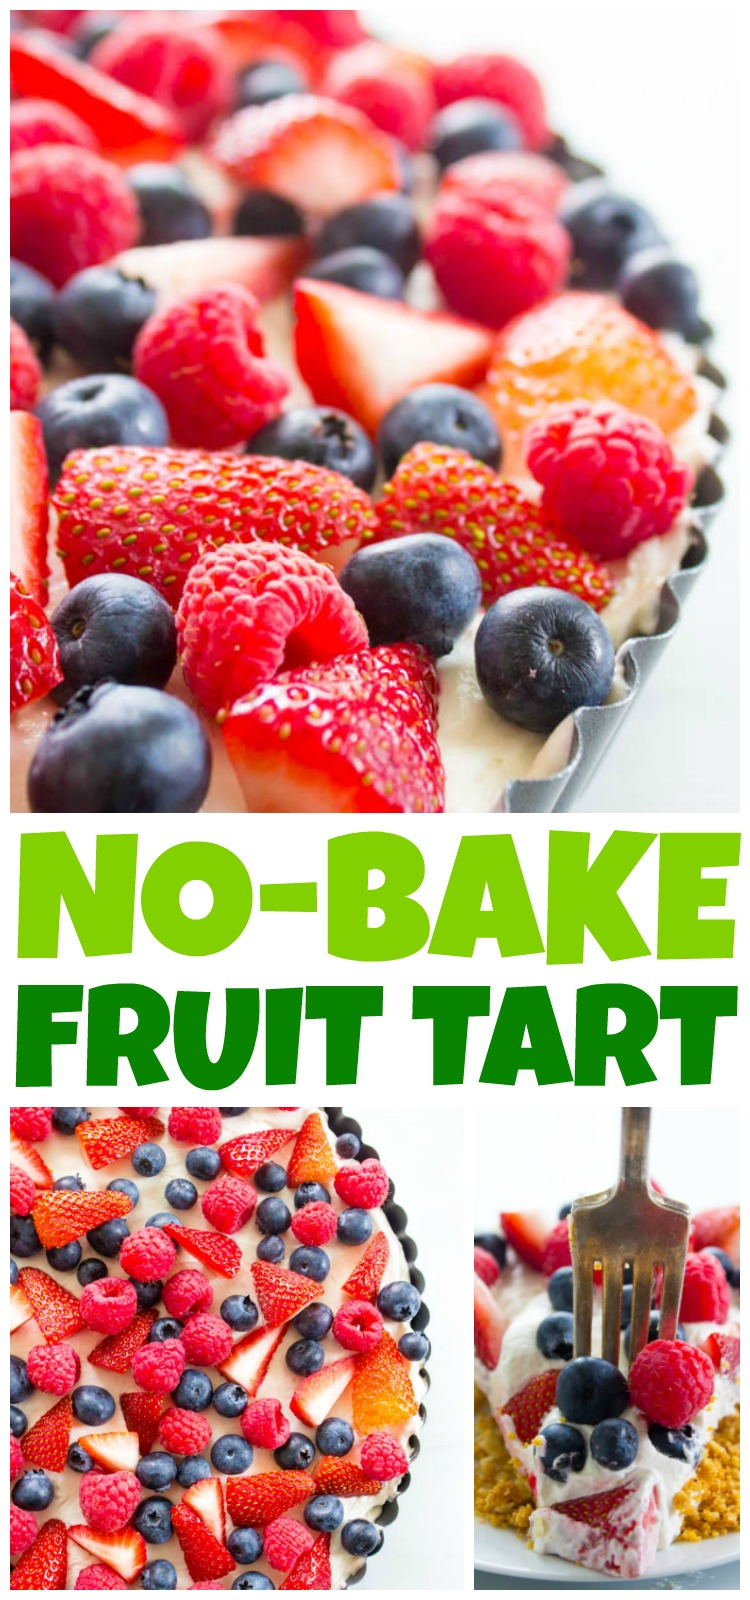 Insanely delicious & easy this Simple No-Bake Fruit Tart is made with an almond graham cracker crust, cream cheese filling, then topped with fresh fruit.